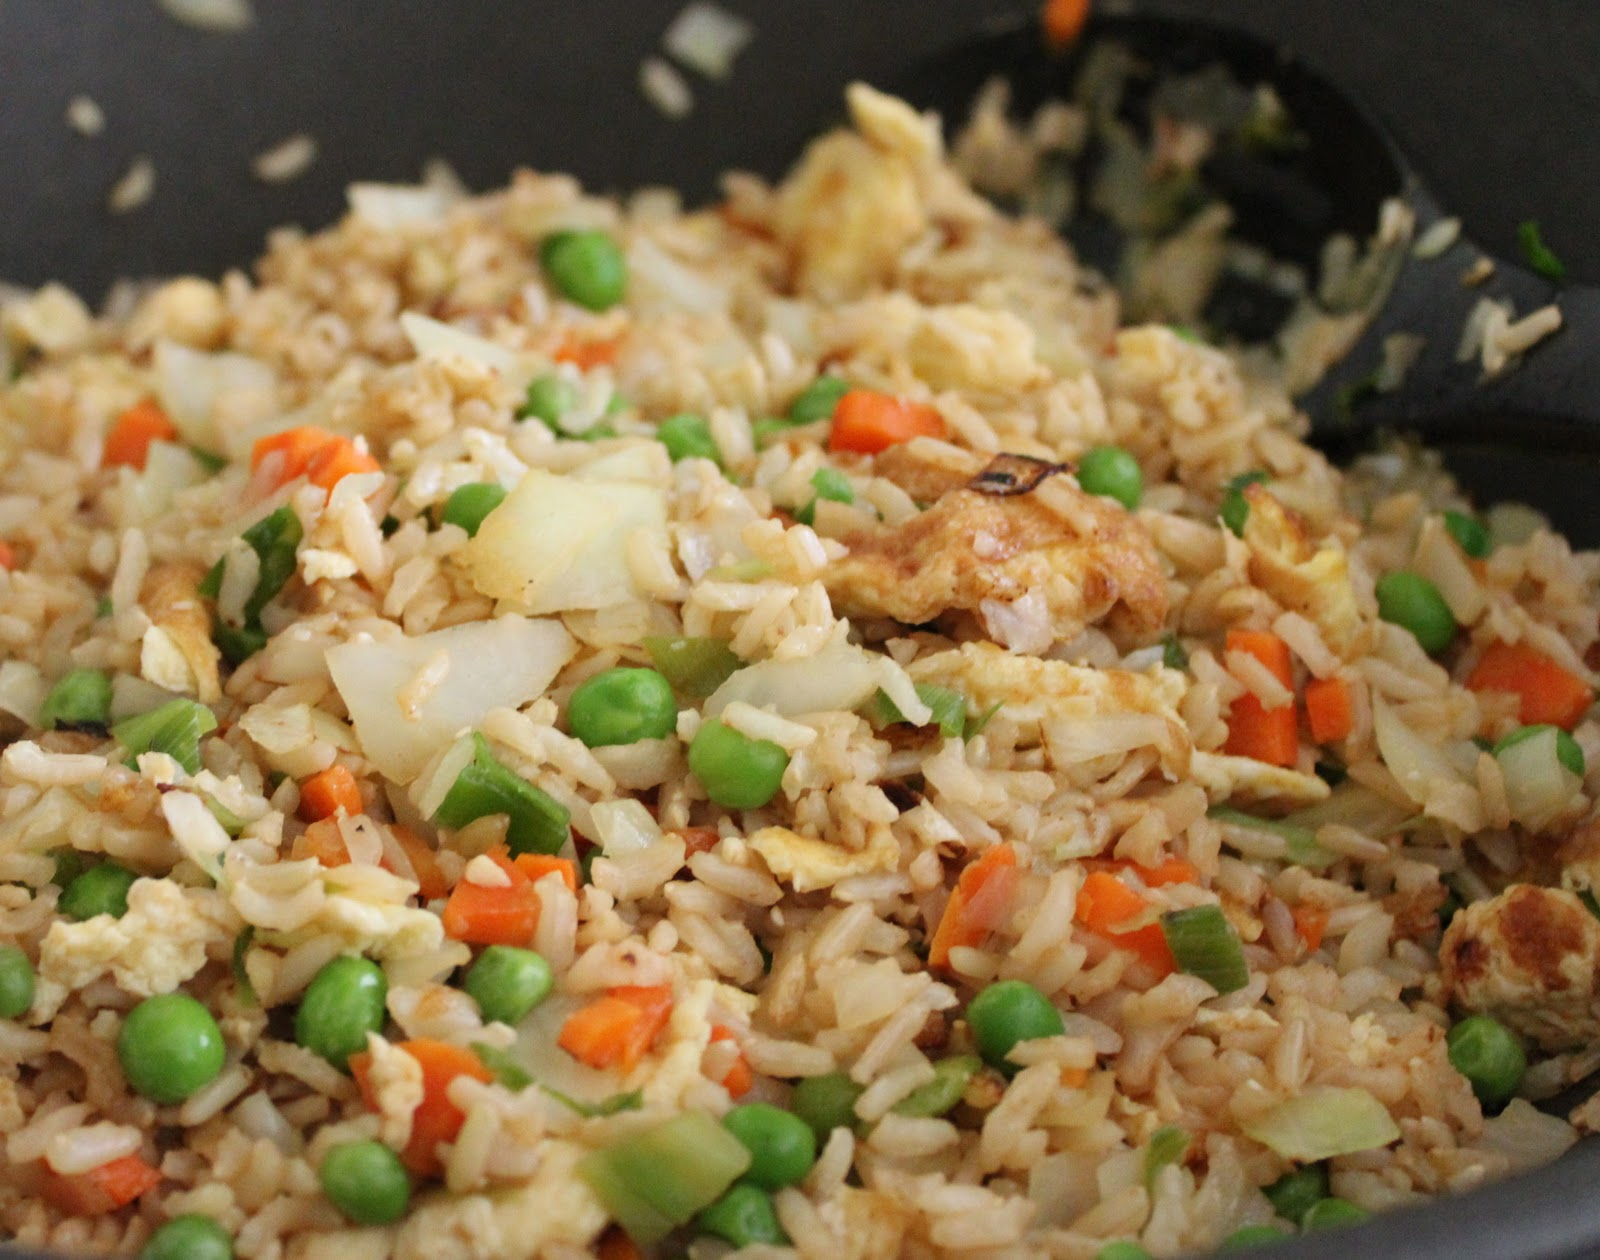 ... chinese recipes easy vegetable fried rice recipe rice fried rice jpg